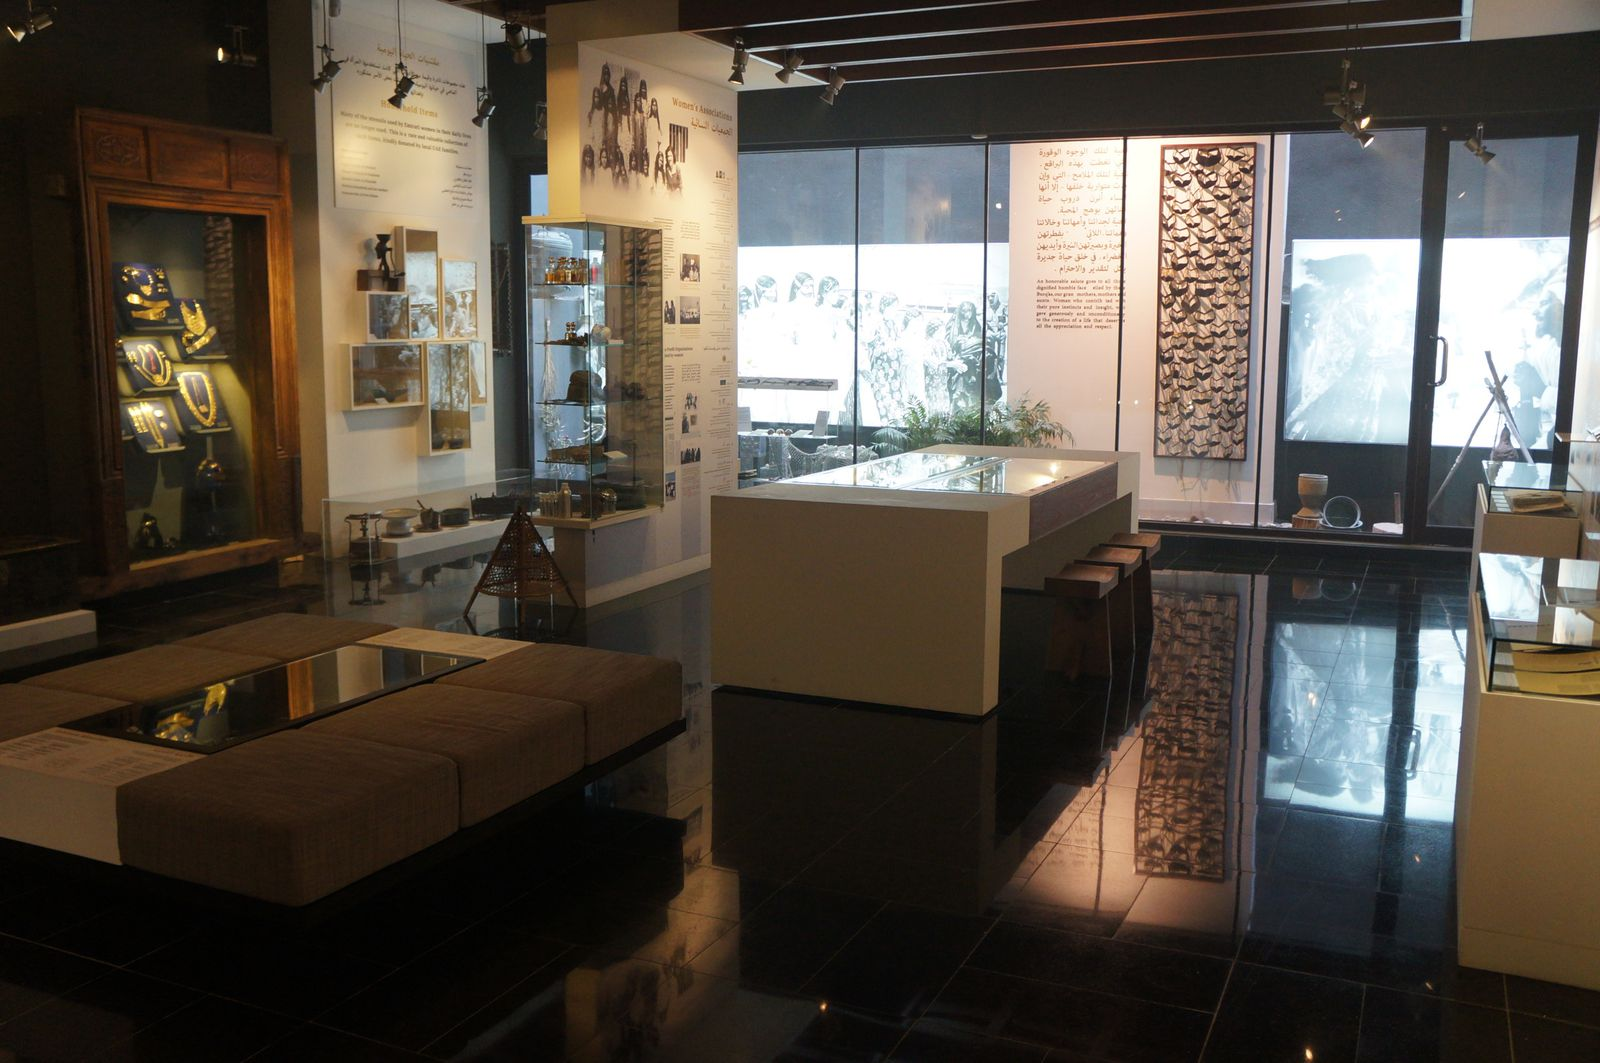 The ground floor is dedicated to the story of women in the UAE